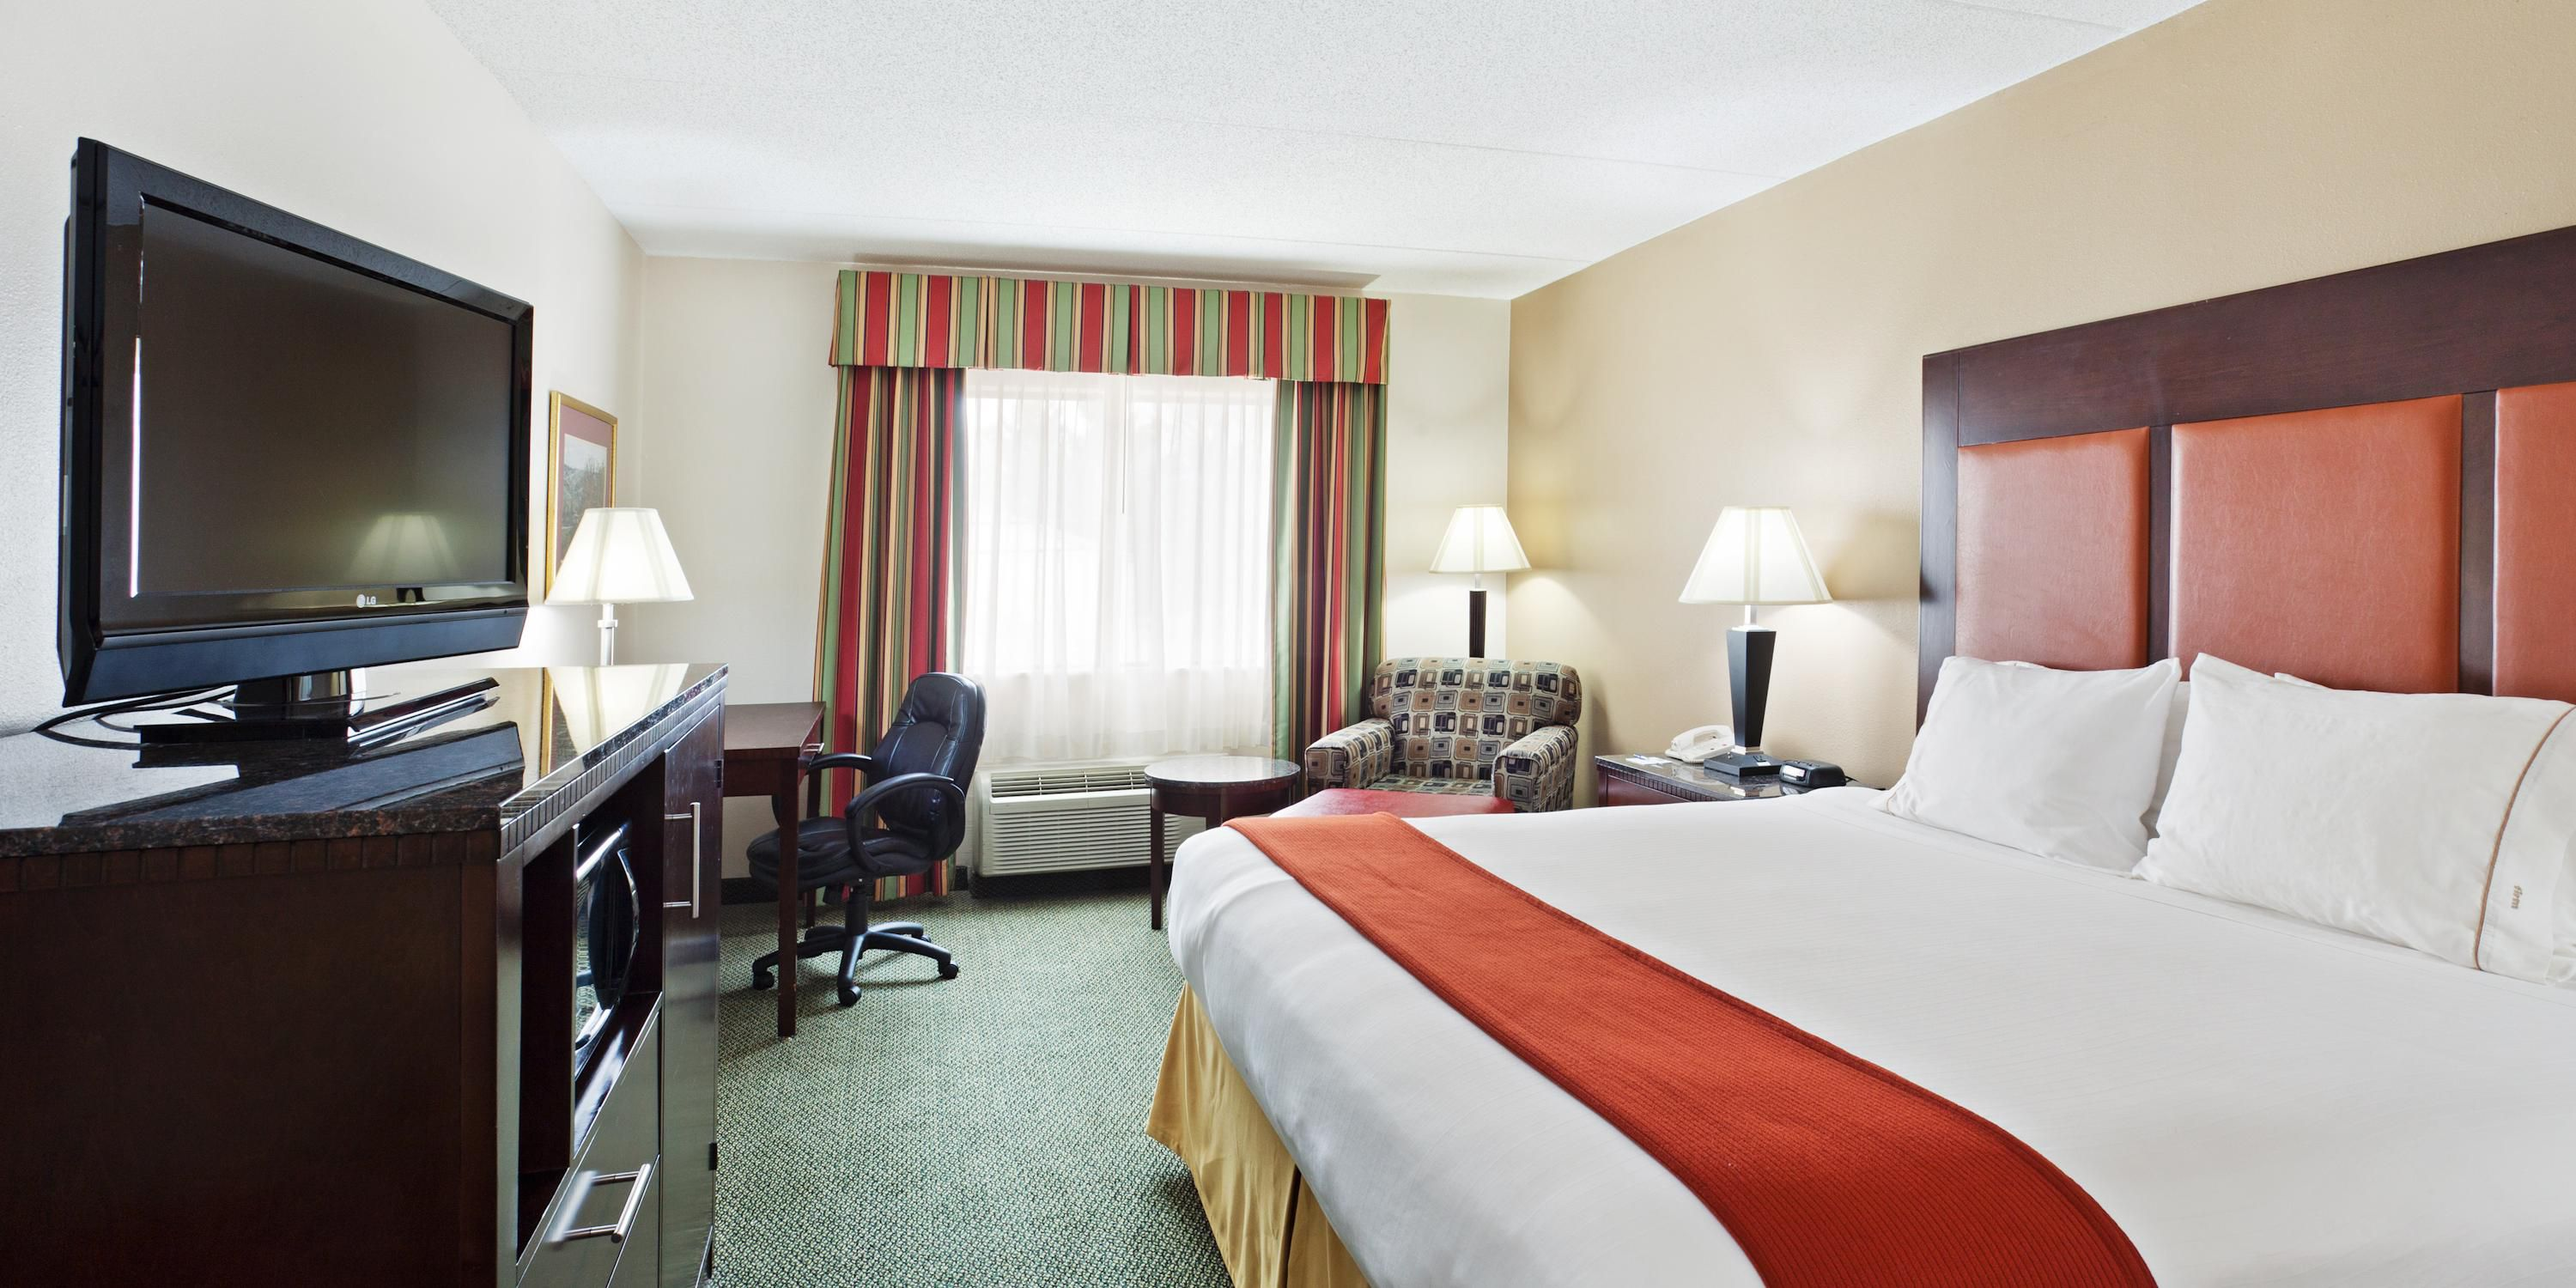 Crib for sale louisville ky - Holiday Inn Express Louisville 2533268463 2x1